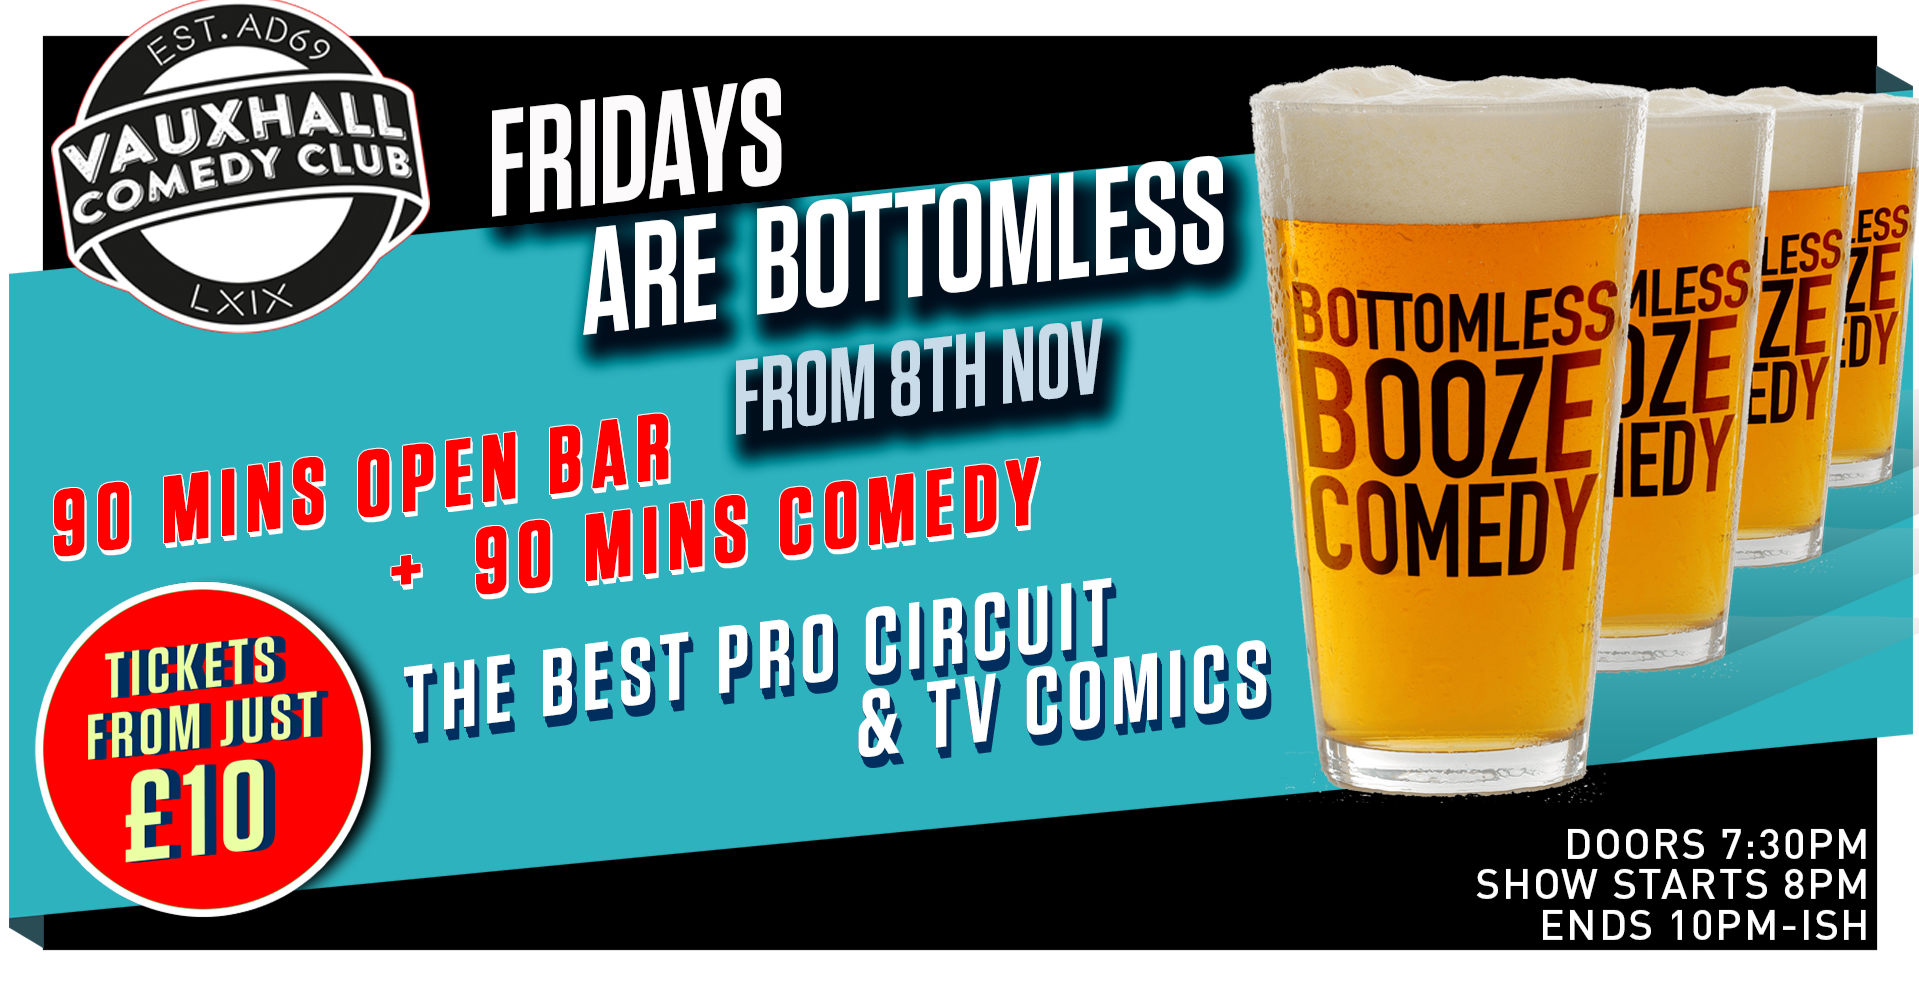 Bottomless Booze Comedy (Friday)